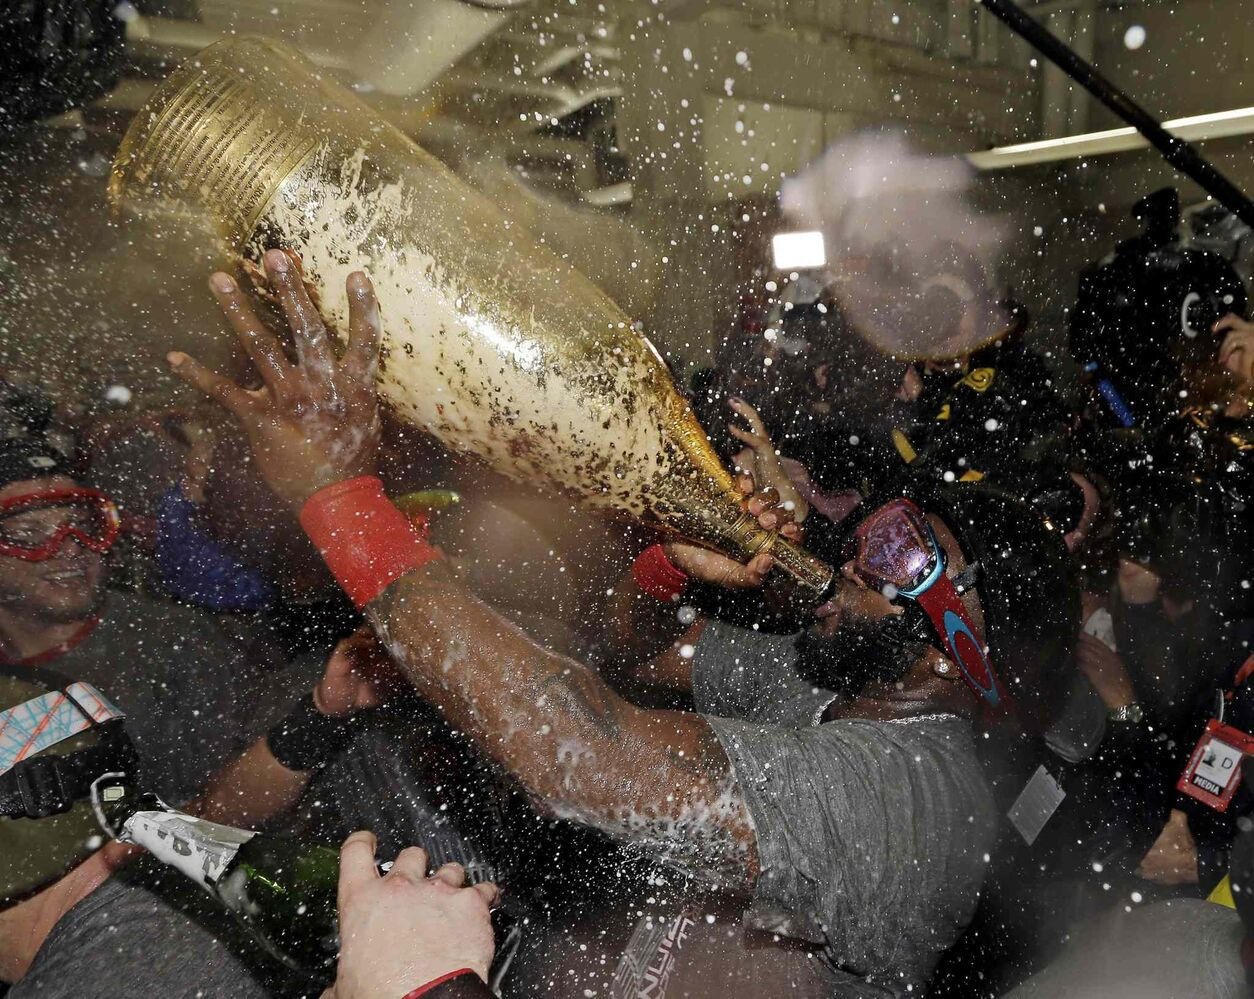 Boston Red Sox's David Ortiz drinks out of a giant bottle of Champagne as he celebrates with teammates.